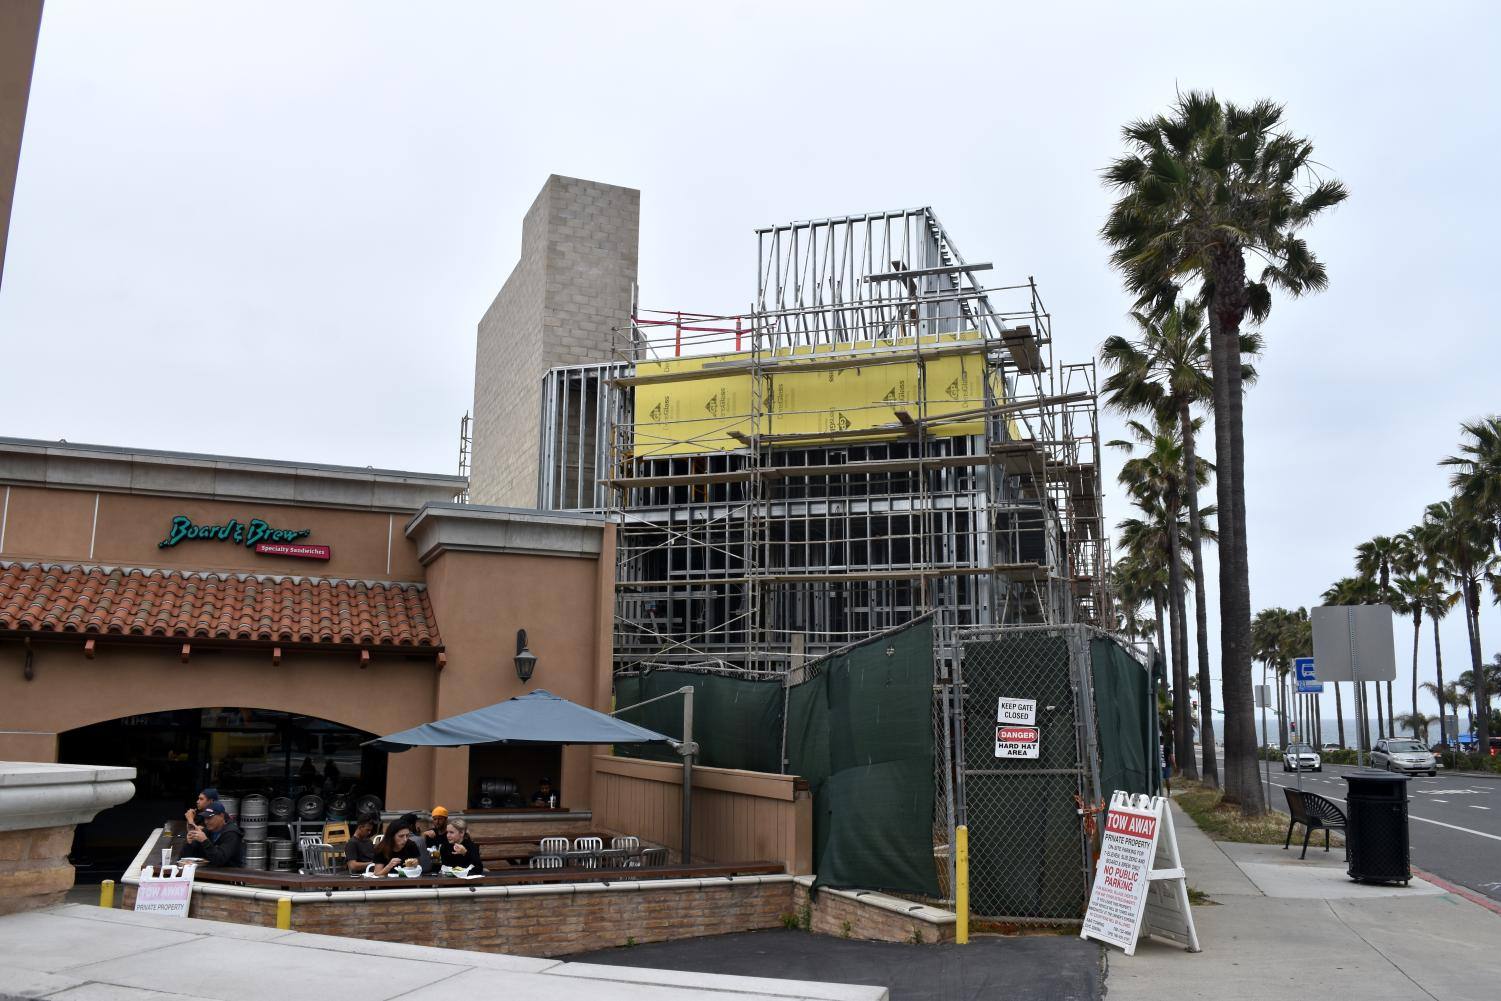 A new hotel is being built right next to the Carlsbad favorite, Board and Brew. The Carlsbad village is one of many areas getting new additions with new locations being built.